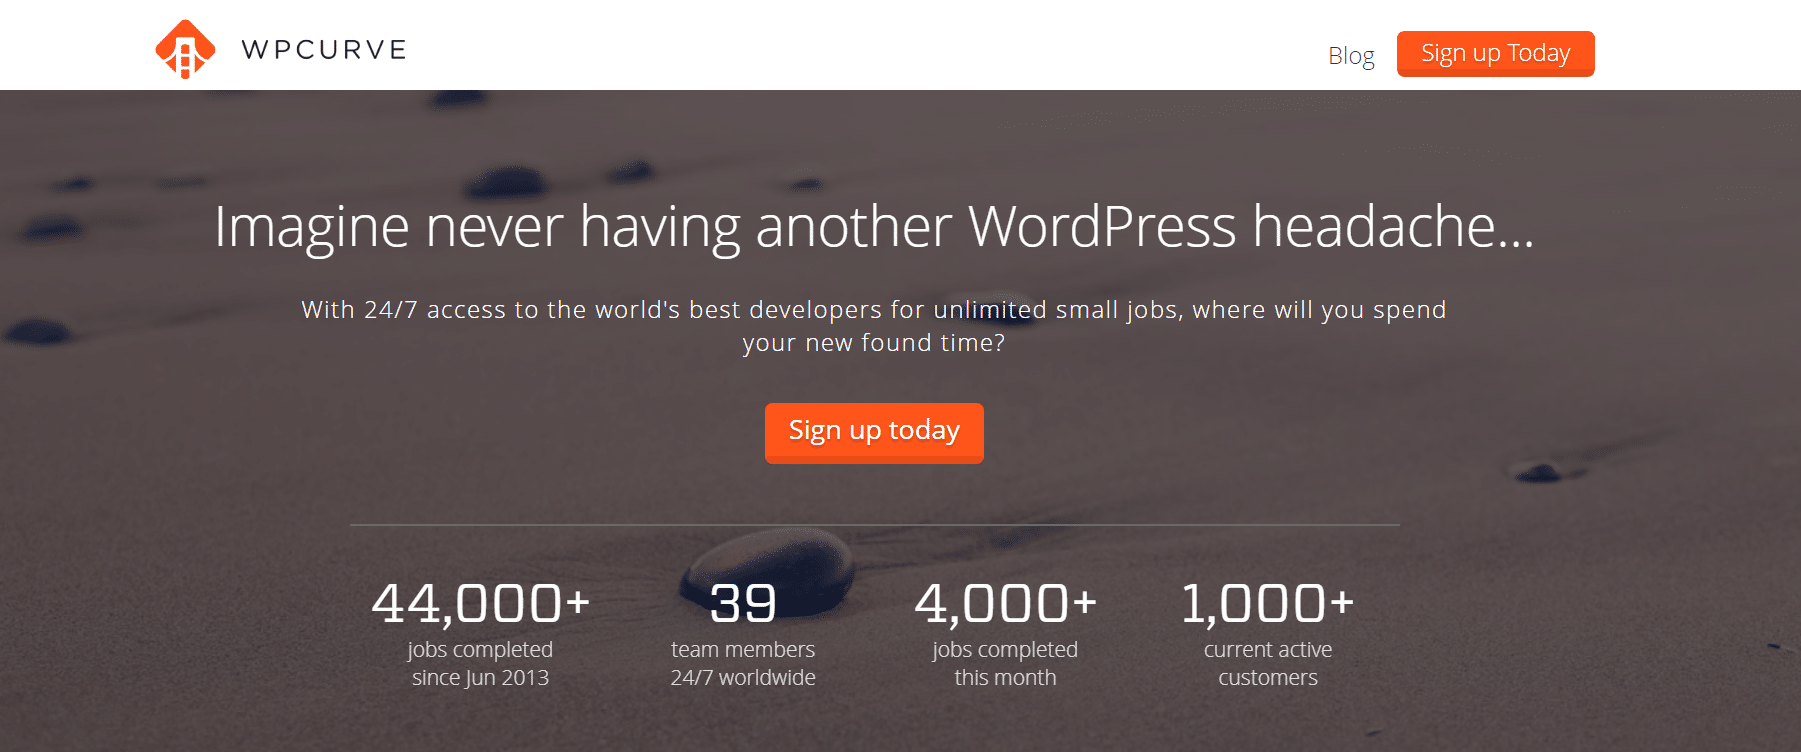 WP Curve - WordPress maintenance and support service